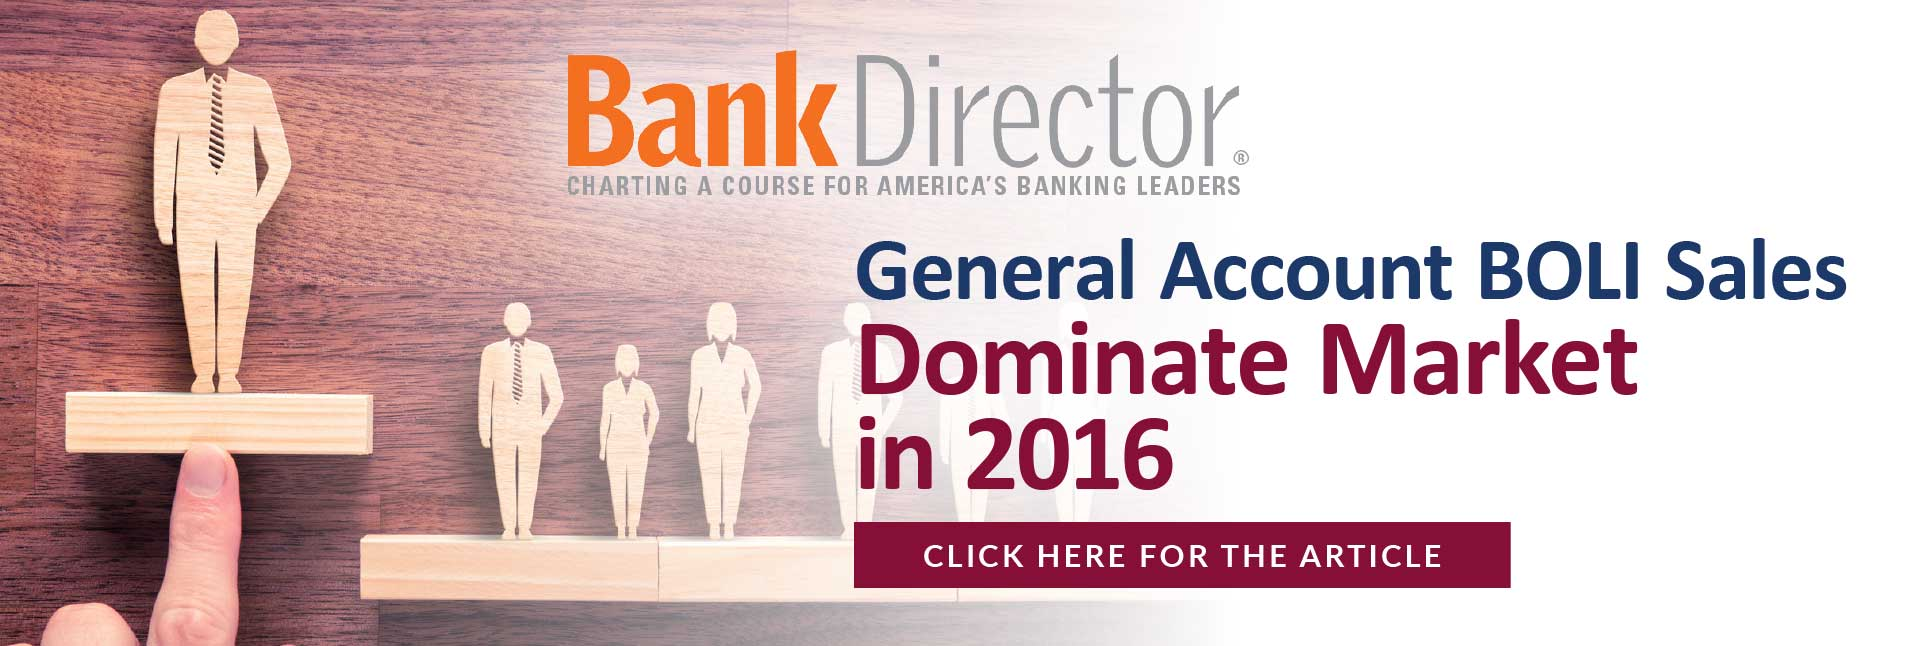 Bank Director - General Account BOLI Sales Dominate Market in 2016